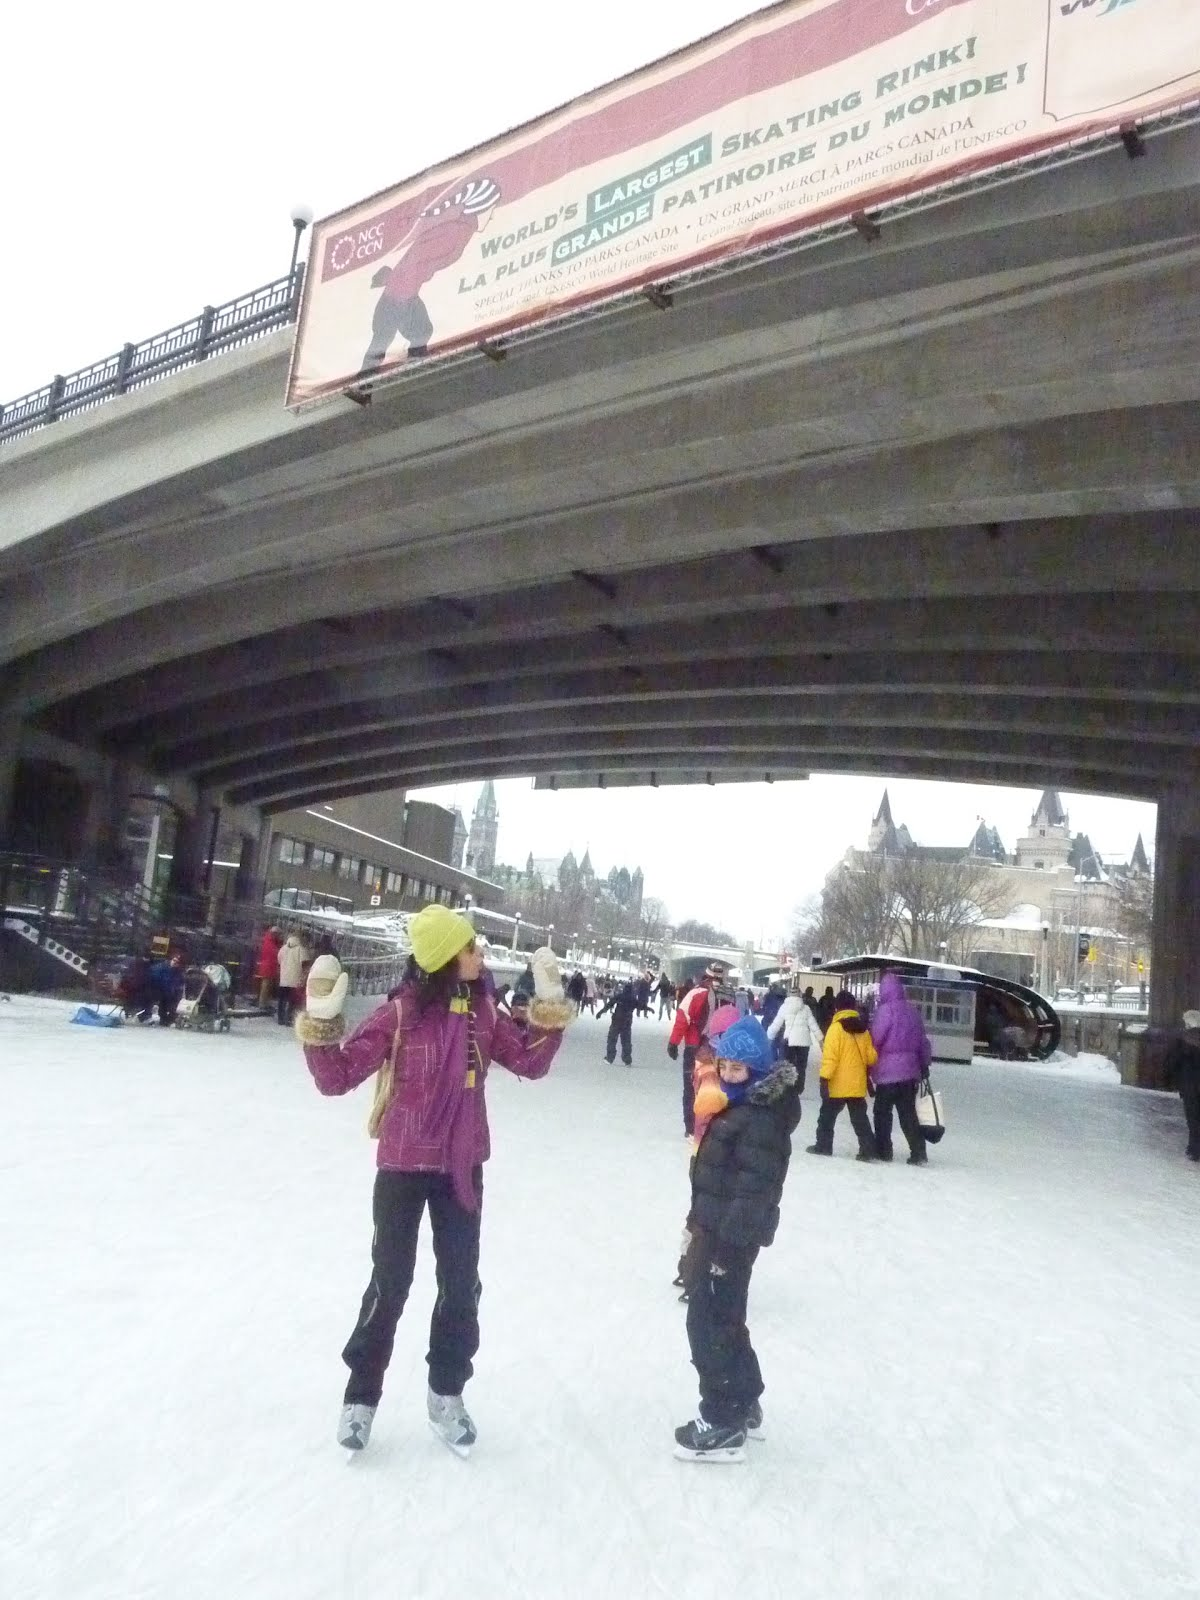 val rie l 39 oiseau libre patiner sur la plus grande patinoire du monde. Black Bedroom Furniture Sets. Home Design Ideas